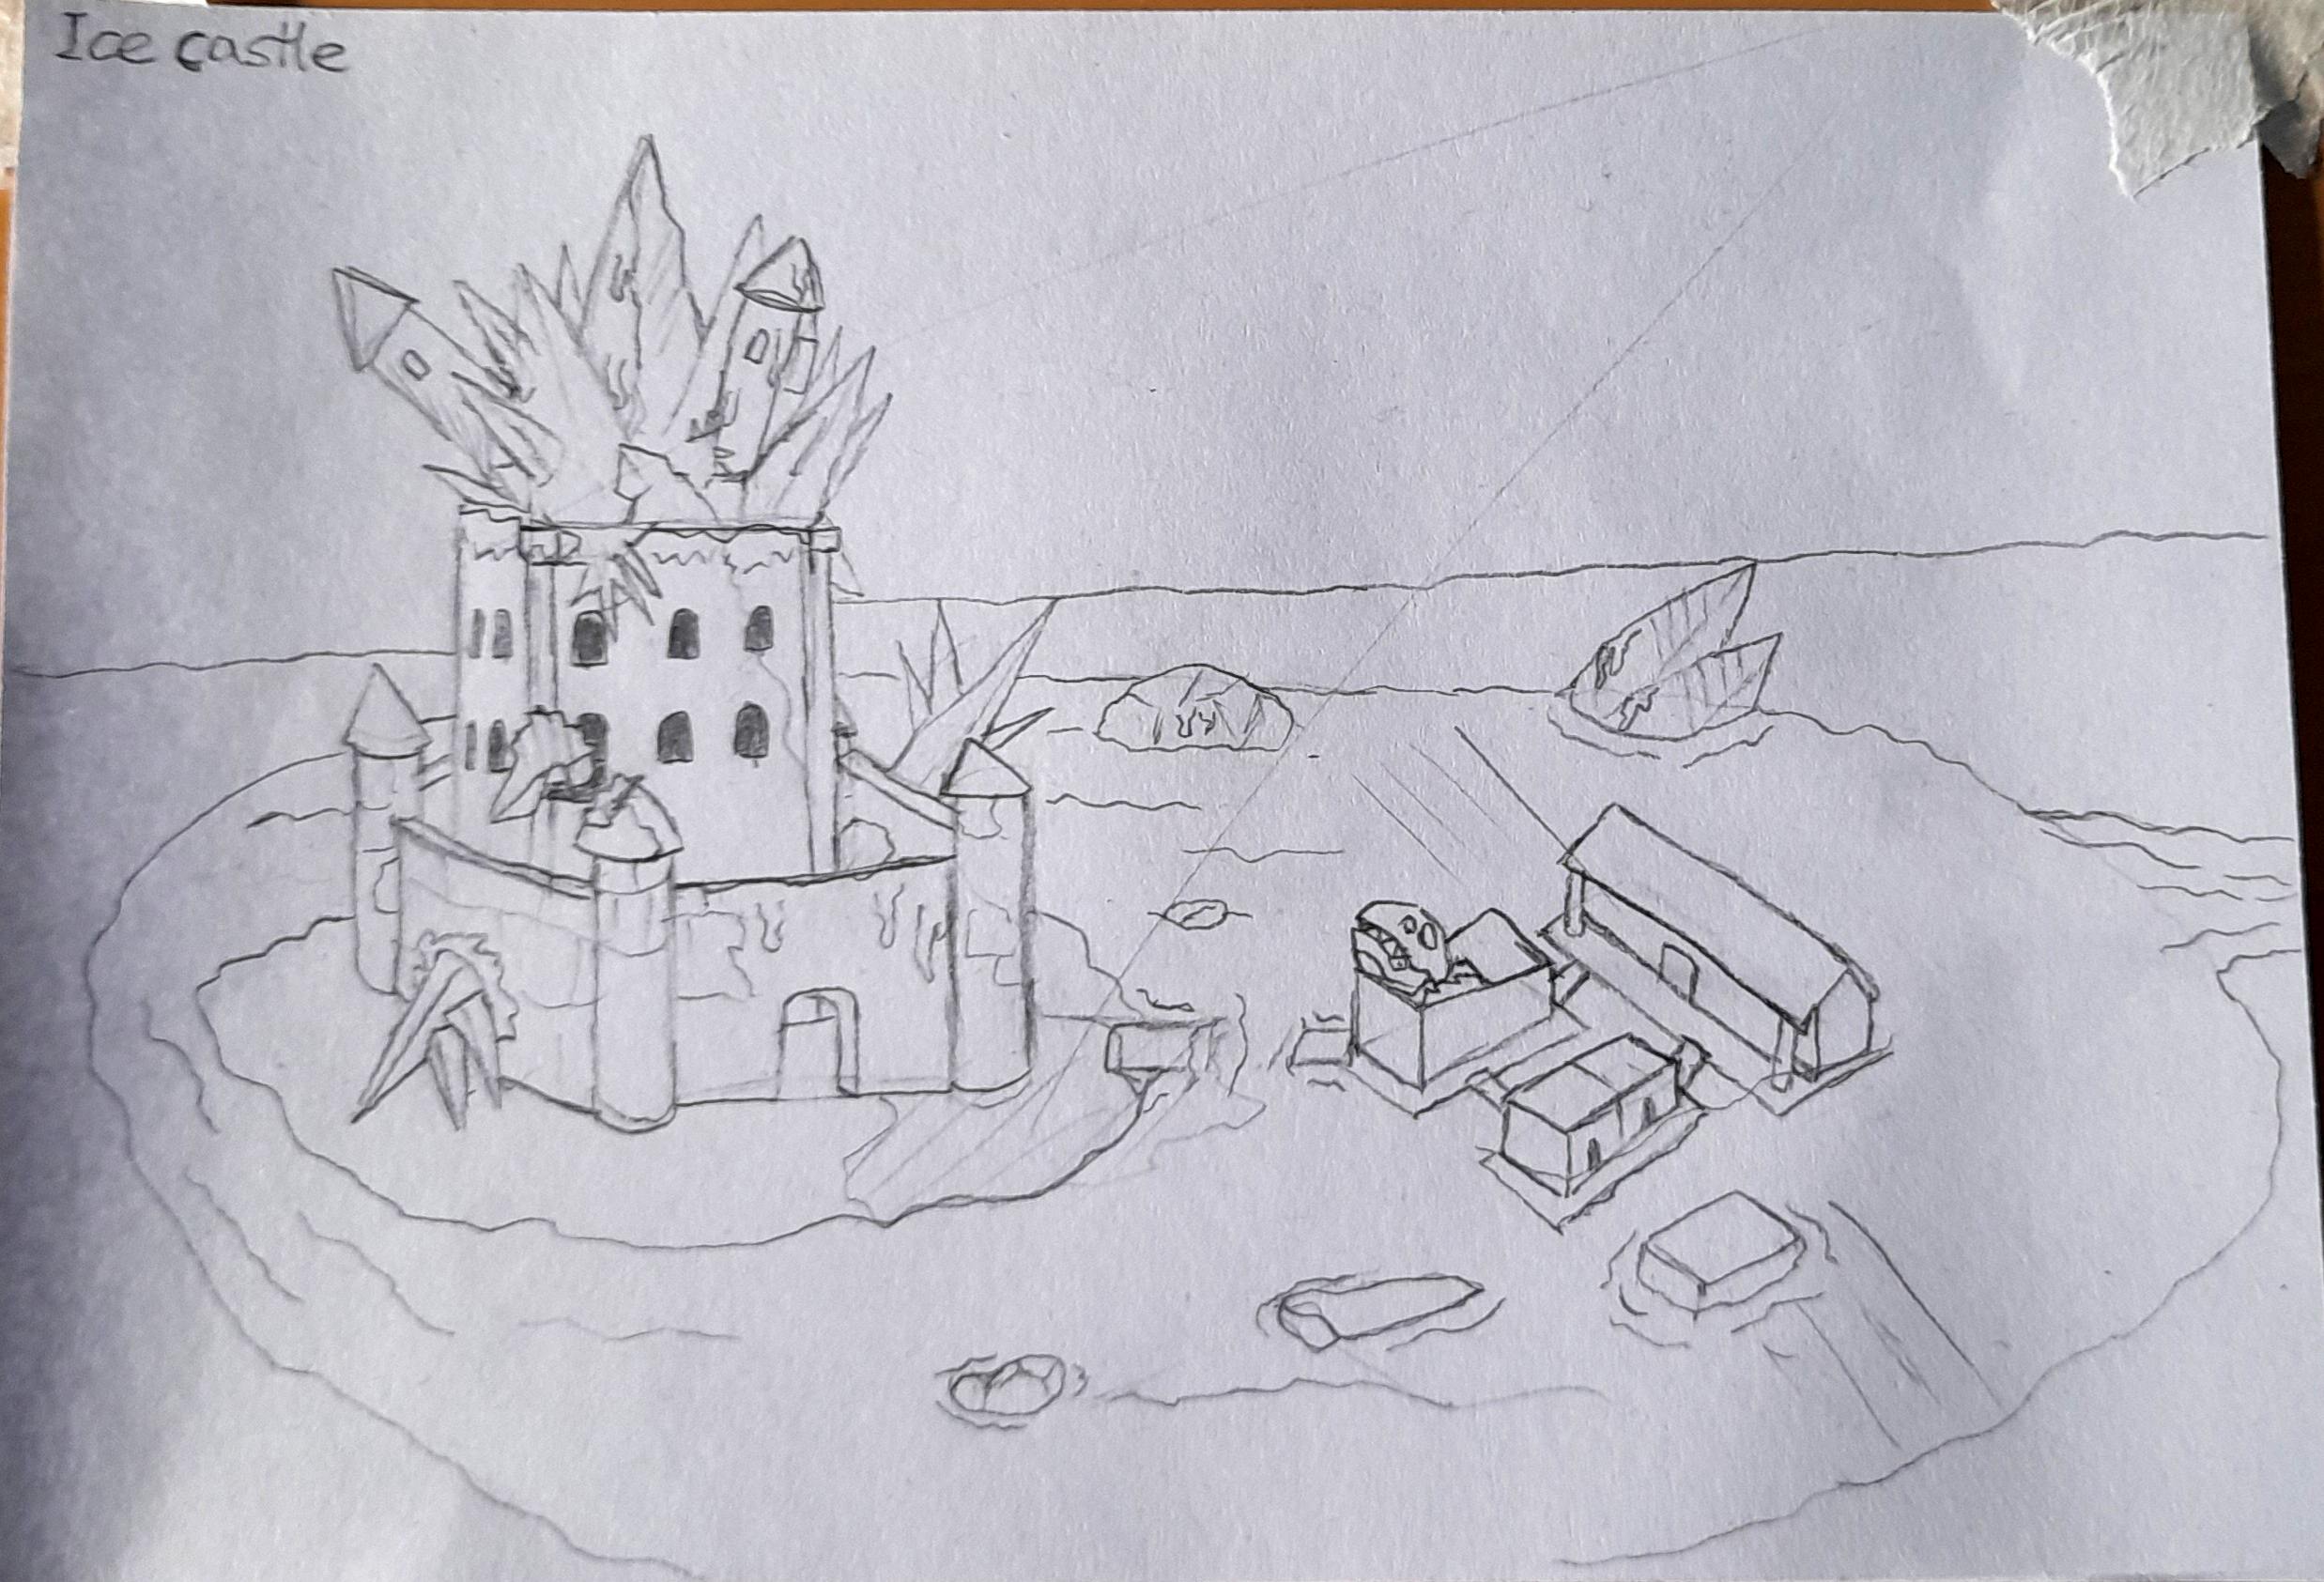 A pencil sketch of a castle that has been overtaken by ice